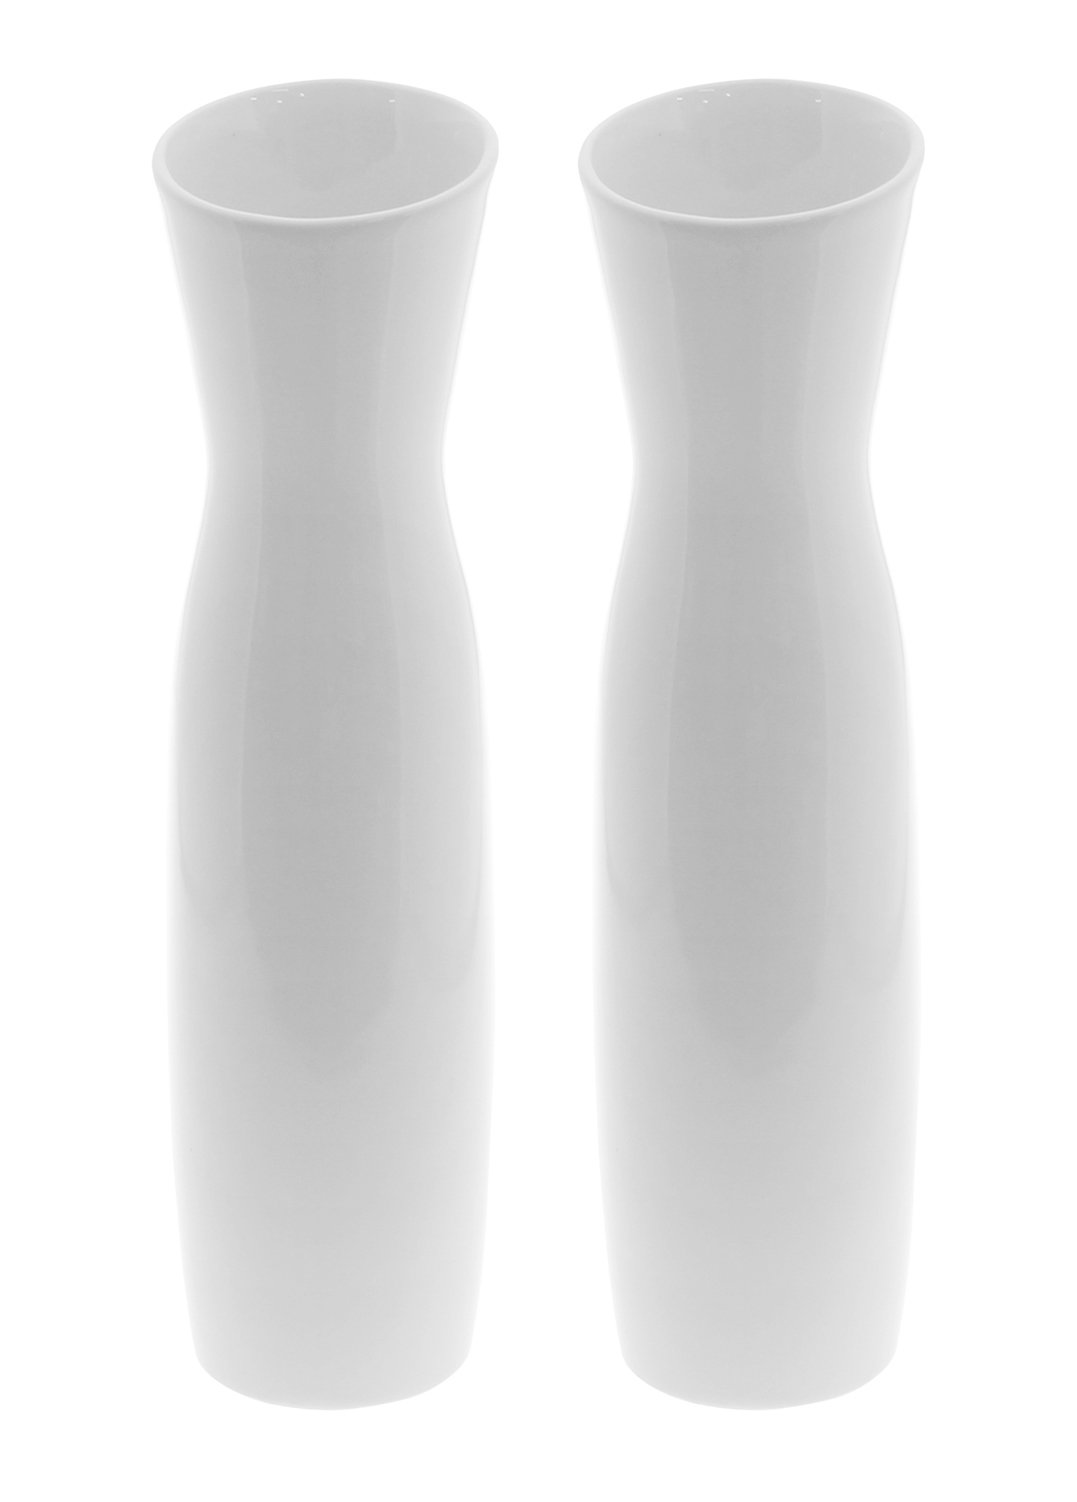 "JustNile 11.8 "" Tall Modern Elegant Looking Decorative Vases Ideal For Wedding Parties Receptions Centerpiece, Front Porch Living Room Kitchen Home Décor - Set of 2, White - [ Elegant, Minimalist Tulip Looking Vase ] - Classic, modern simplistic design, the flower petal opening makes this set easy to use and a great presentation to be displayed on your tabletop. [ Smooth, Clean Finish ] - To distinct from the ordinary vases on the market, we've made these elegant, smoothly finished vases for you to decorate your beloved bouquet or a single rose for your beloved ones. [ Quality Purchase For the Perfect Quantity ] - With this purchase, you do not only get one, but TWO identical modern, classic smoothly made vases. It's always nice to have a pair of vases for your home décor. - vases, kitchen-dining-room-decor, kitchen-dining-room - 51cu7NwSmWL -"